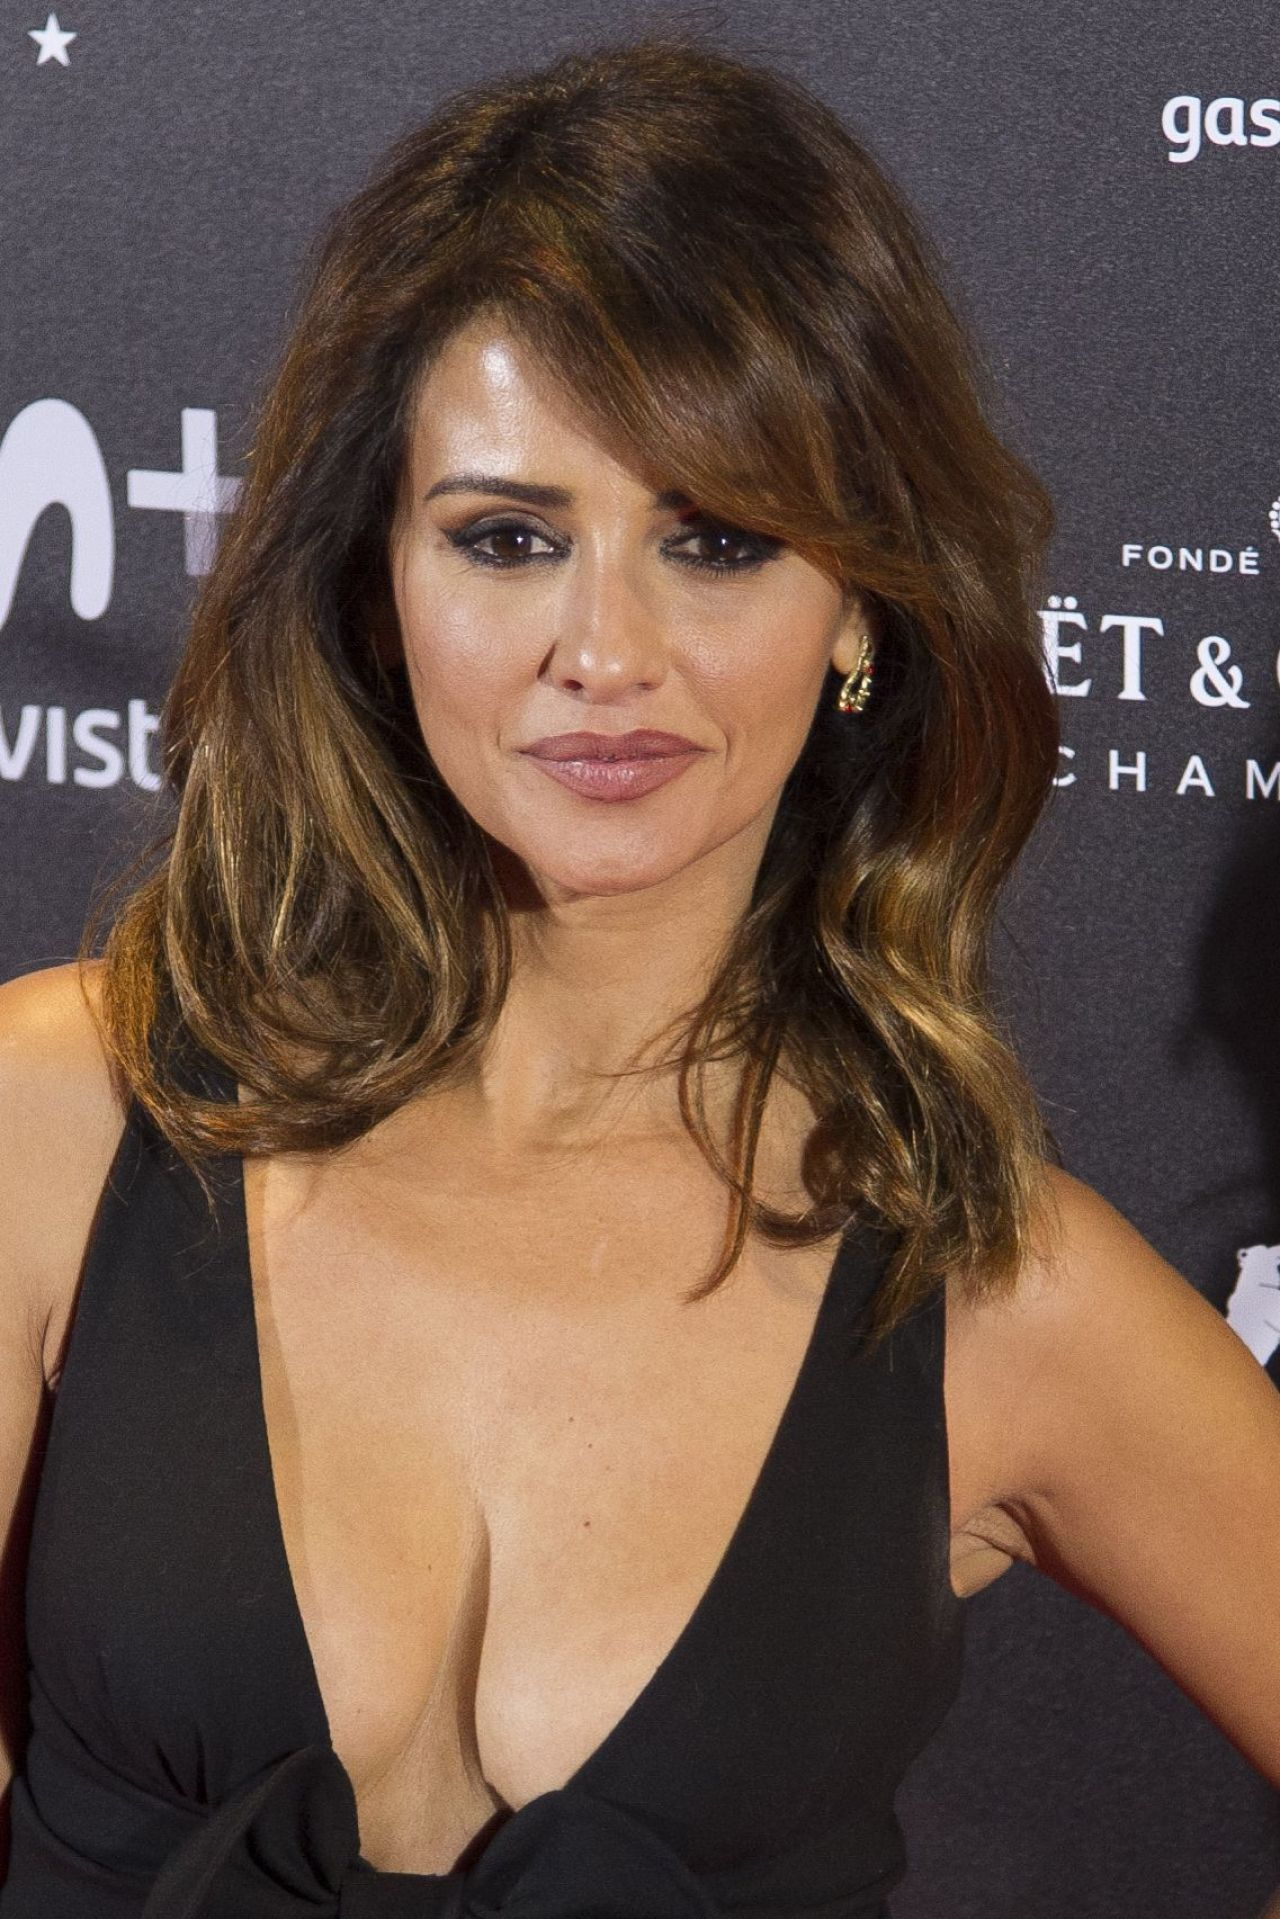 Monica Cruz The Queen Of Spain Premiere In Madrid